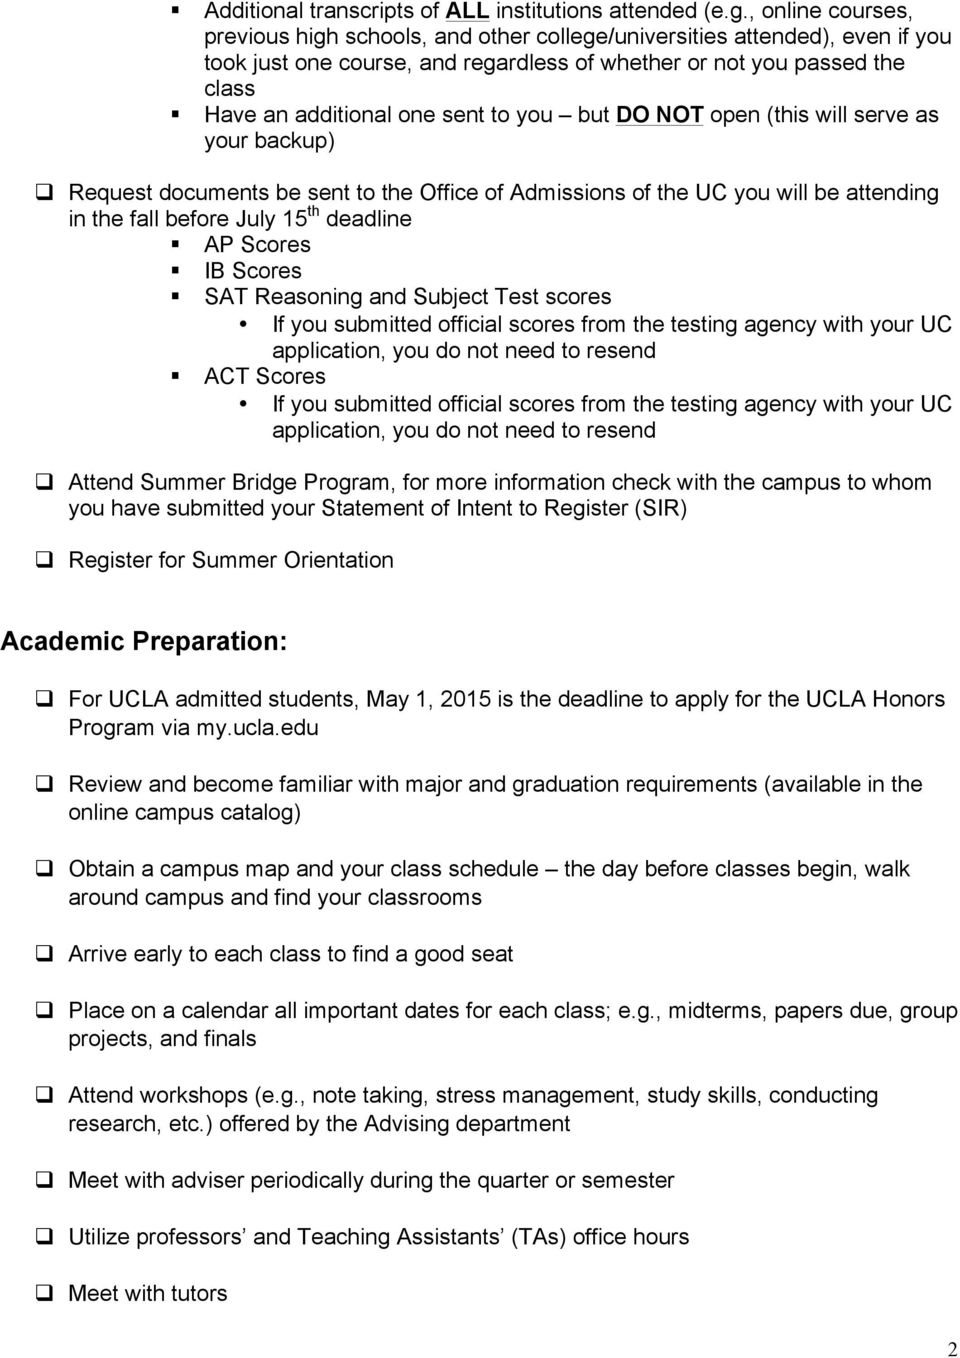 Checklist for Students Admitted to the University of